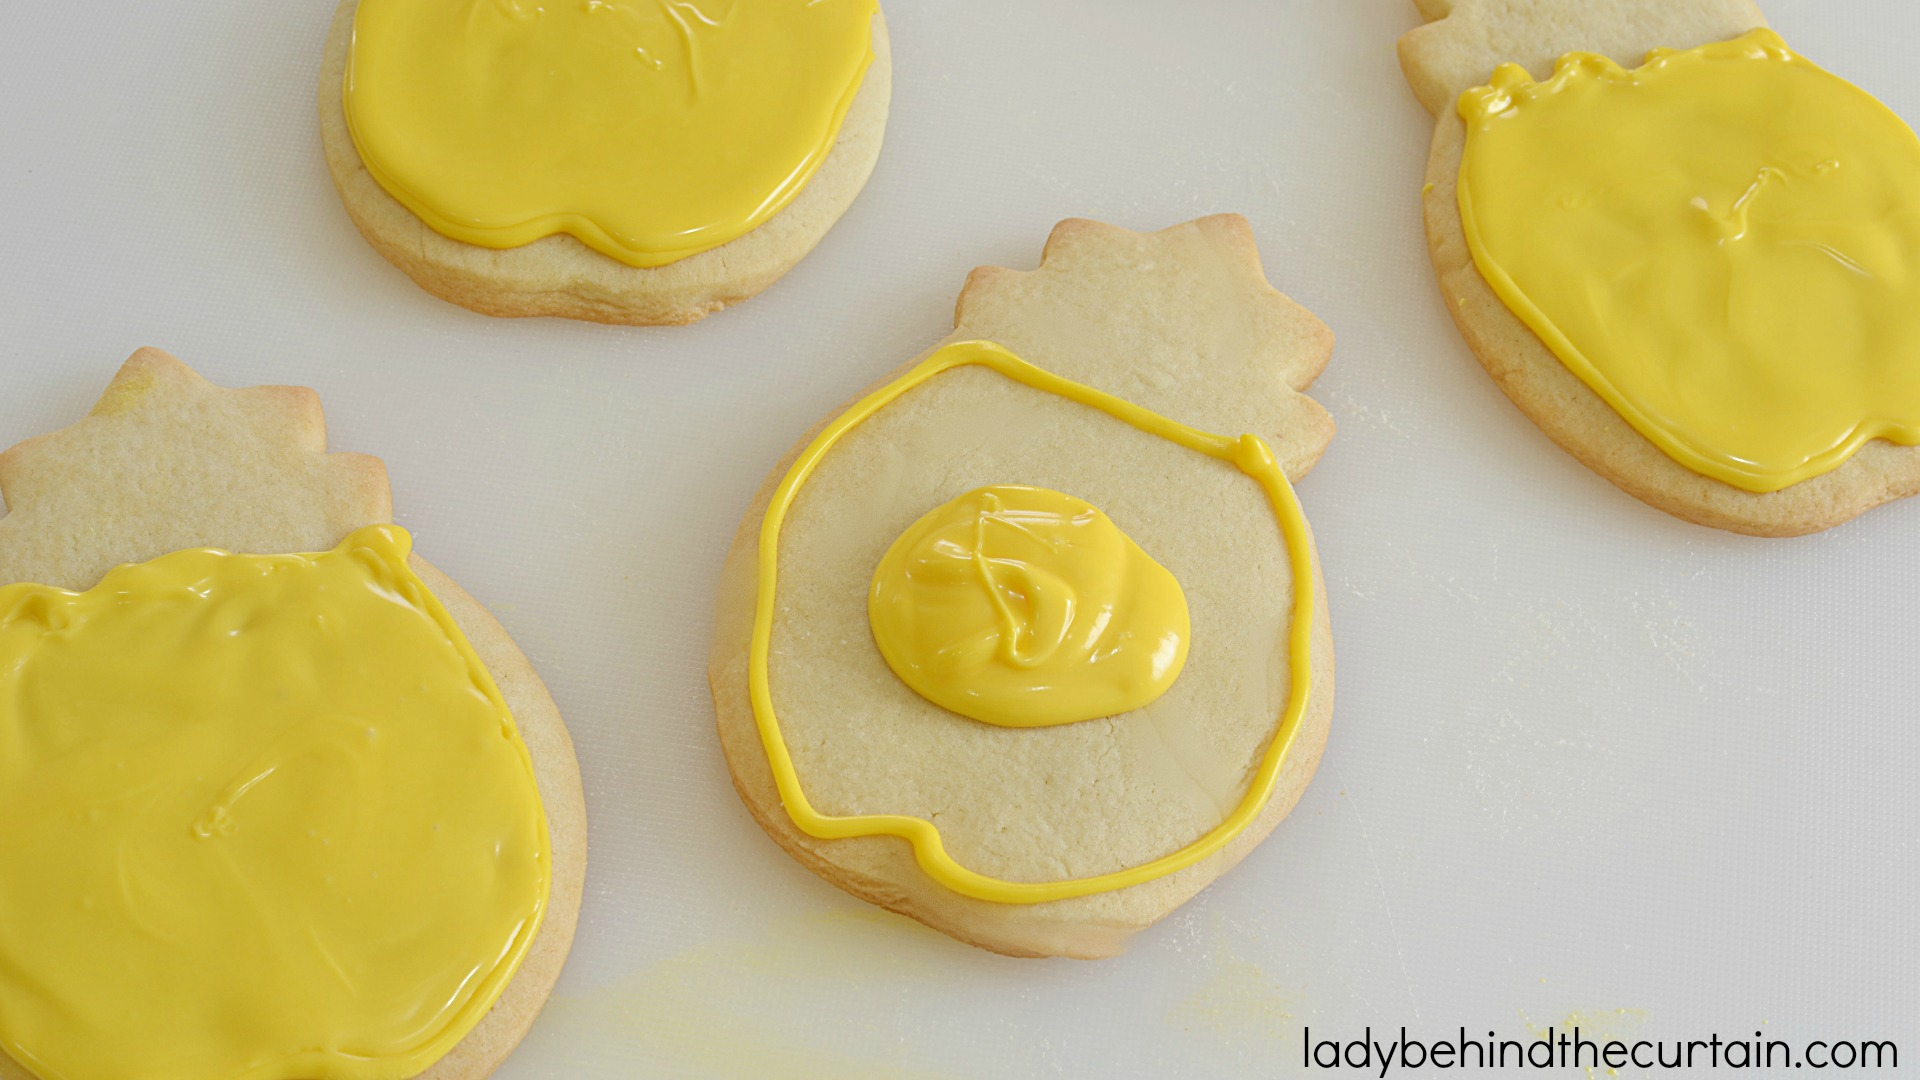 How To Decorate Sugar Cookies With Candy Melts | You won't believe how easy it is to make your own decorated cookies!